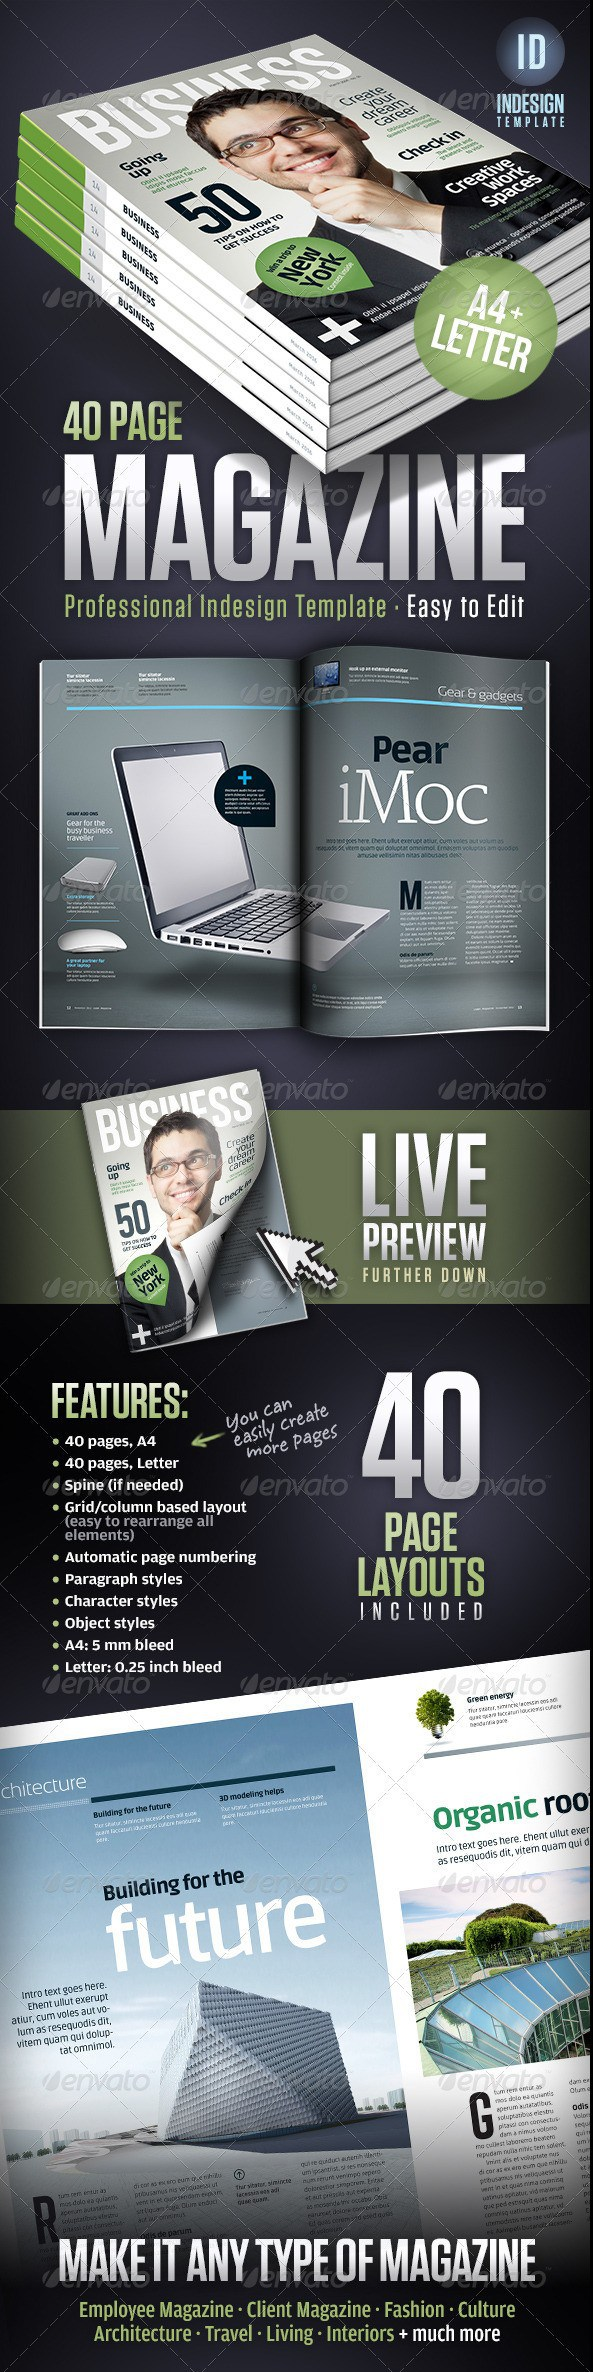 Business Magazine Template A4 + Letter - 40 pages | Templates ...